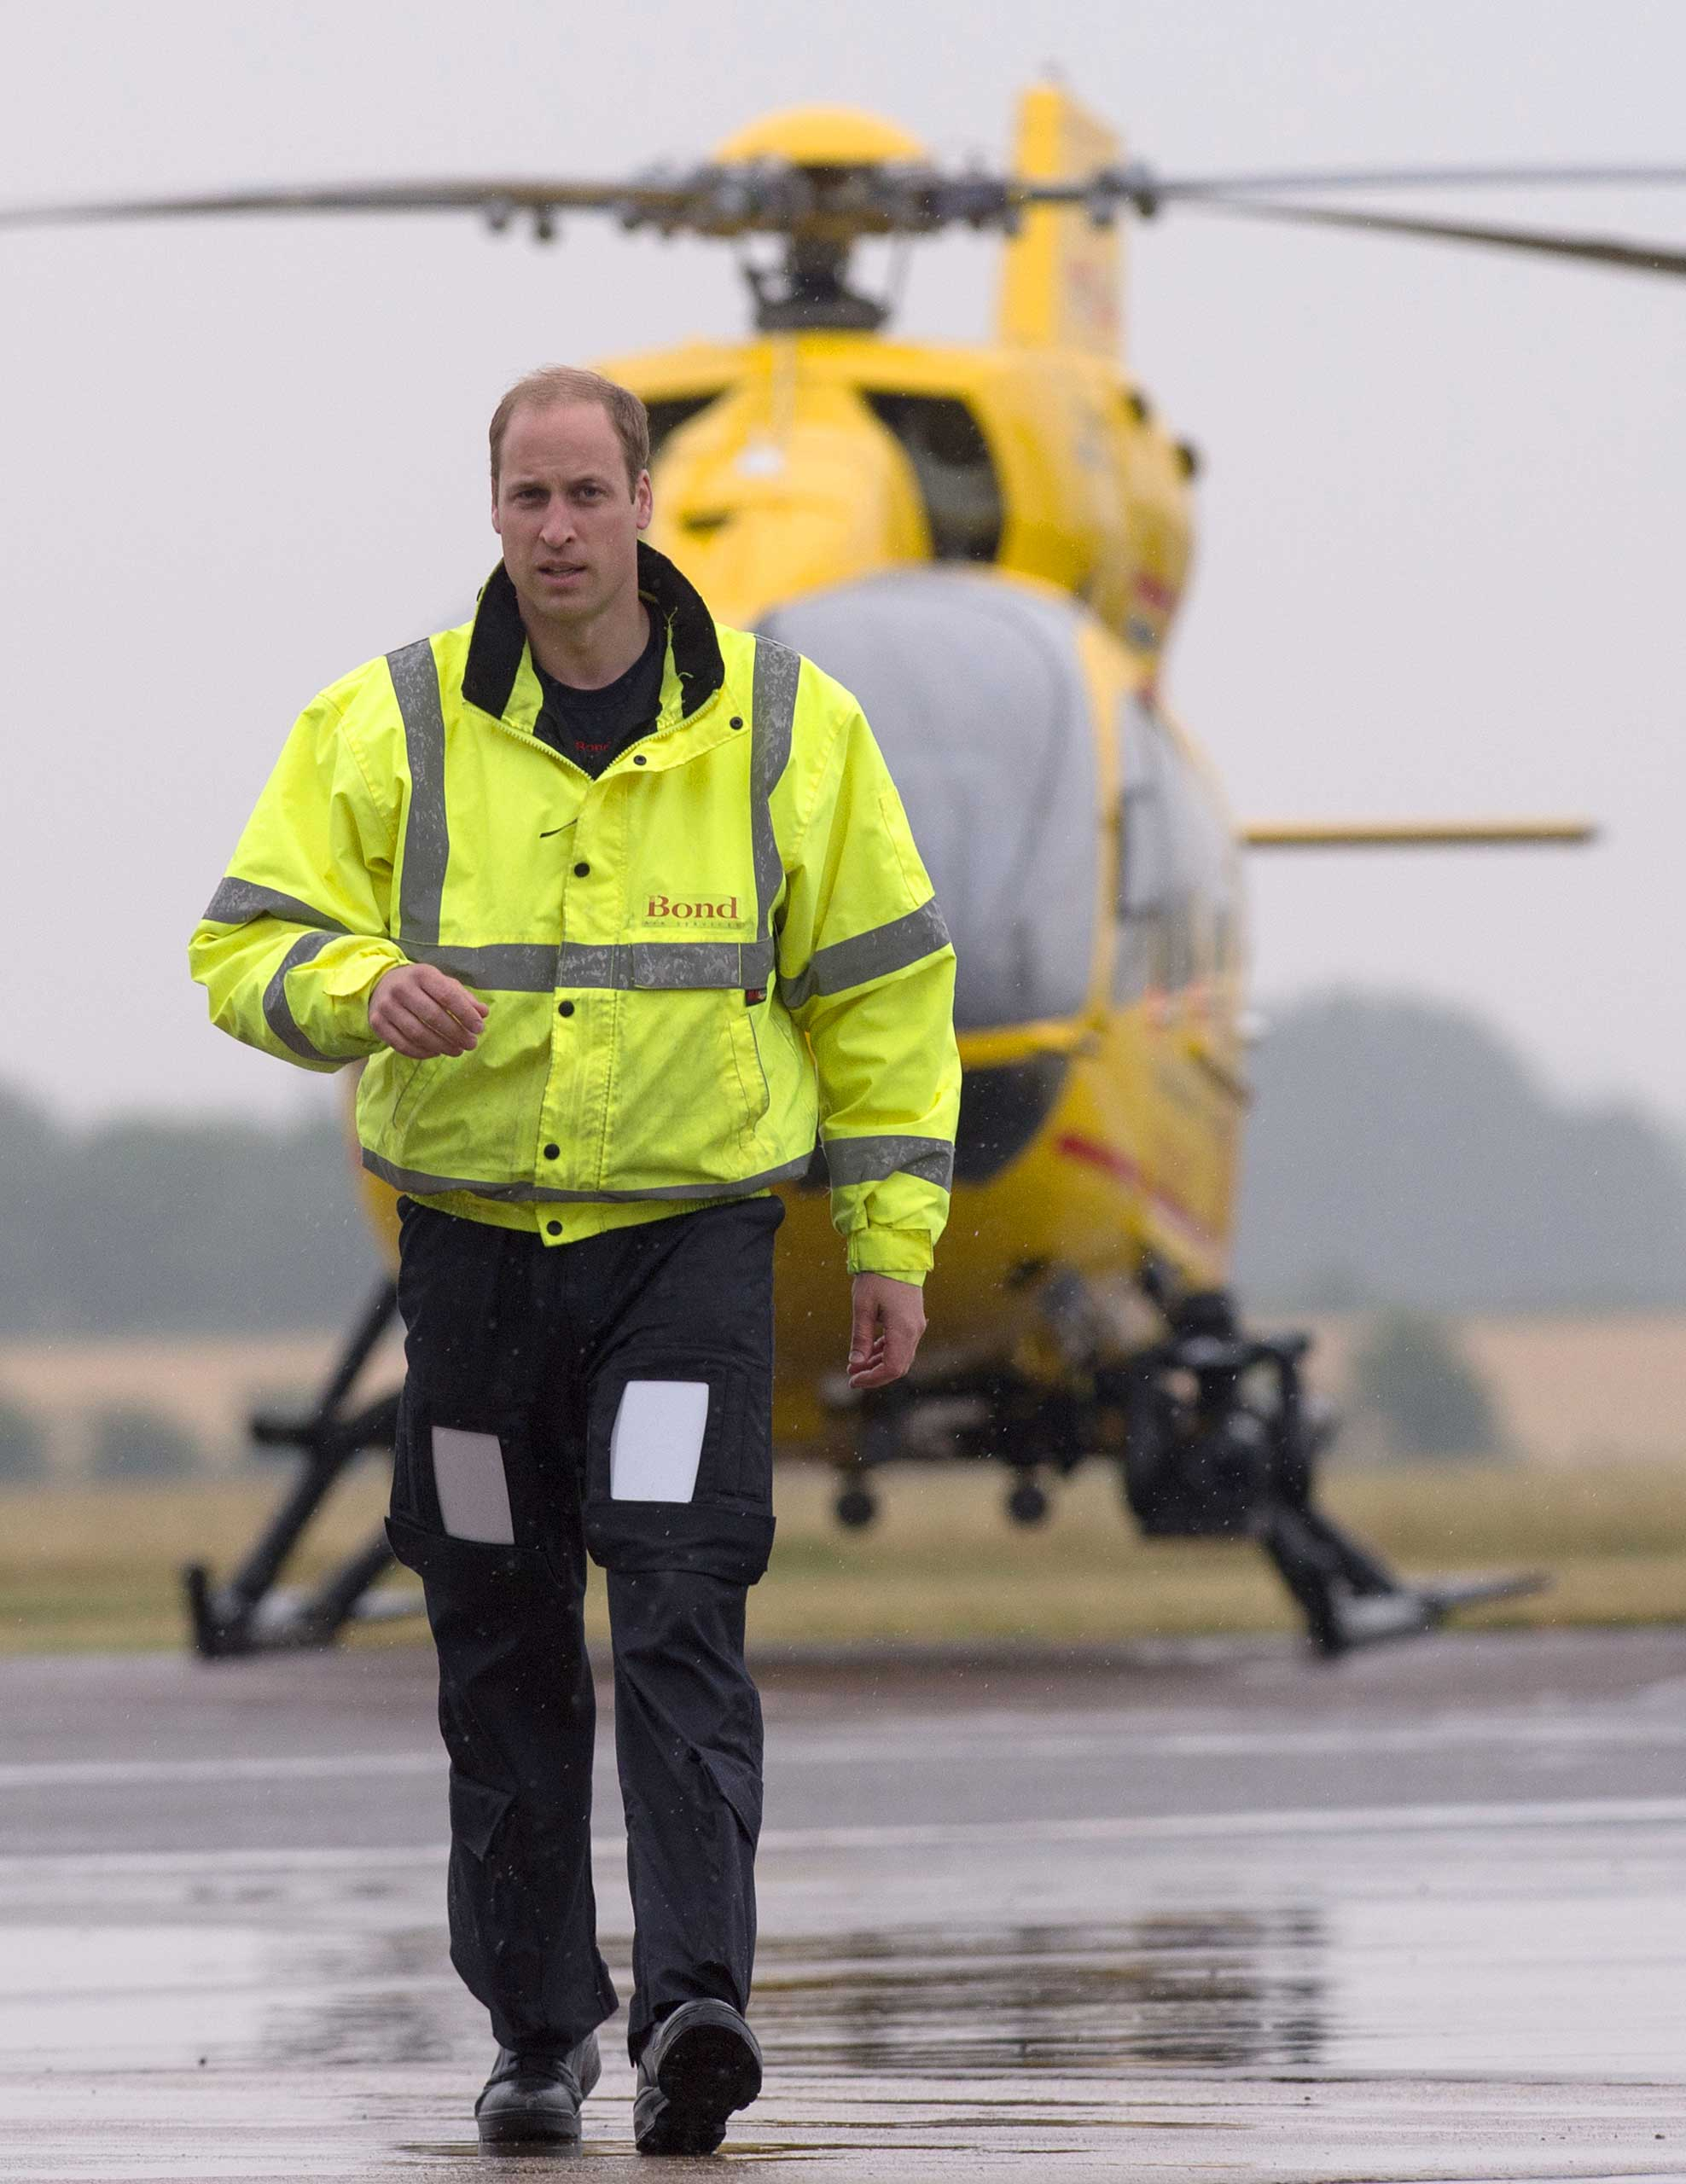 Prince William, The Duke of Cambridge as he begins his new job with the East Anglian Air Ambulance (EAAA) at Cambridge Airport on July 13, 2015 in Cambridge, England.